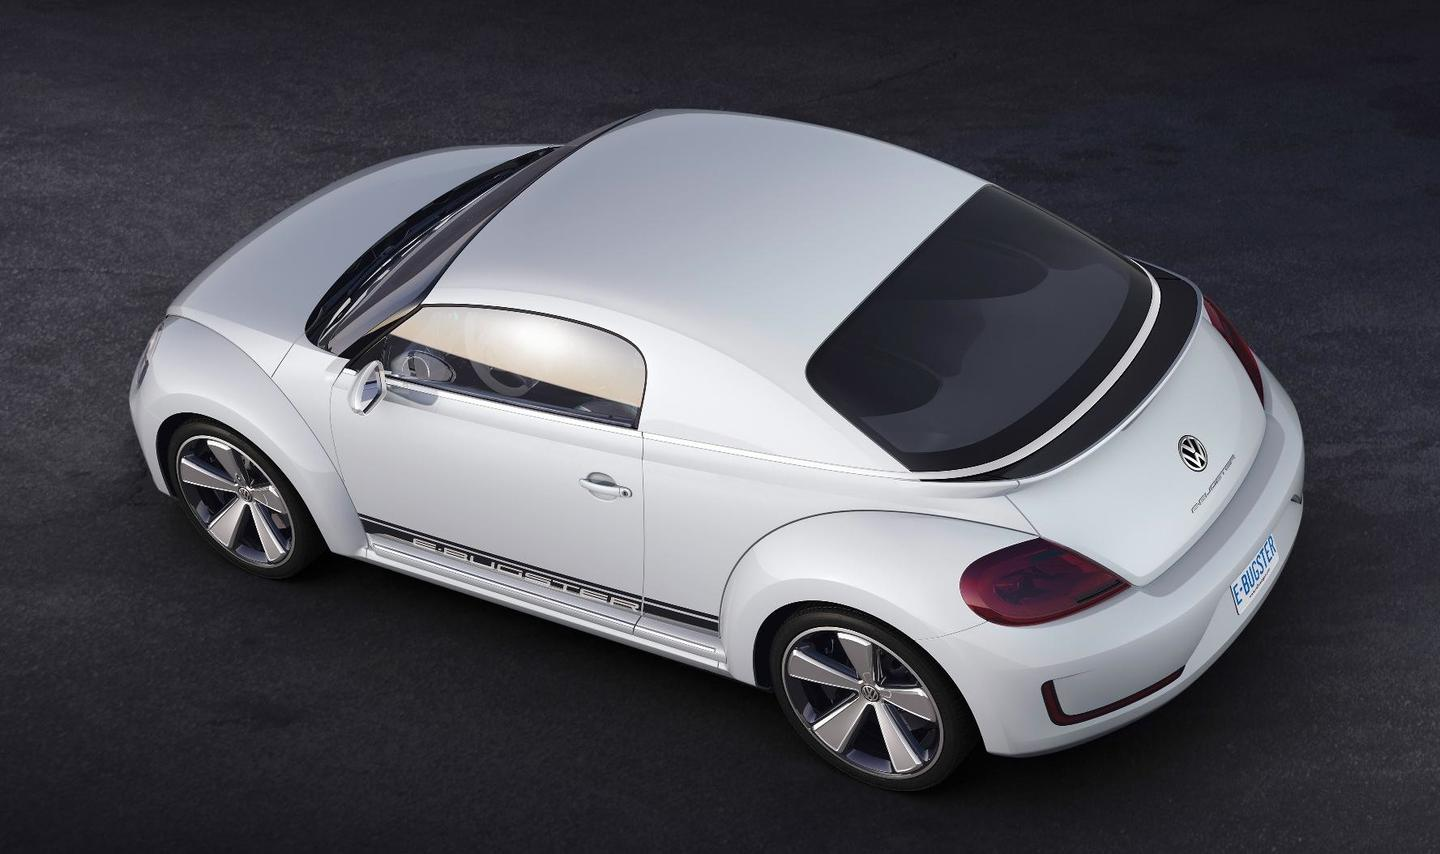 Volkswagen's E-Bugster concept from above